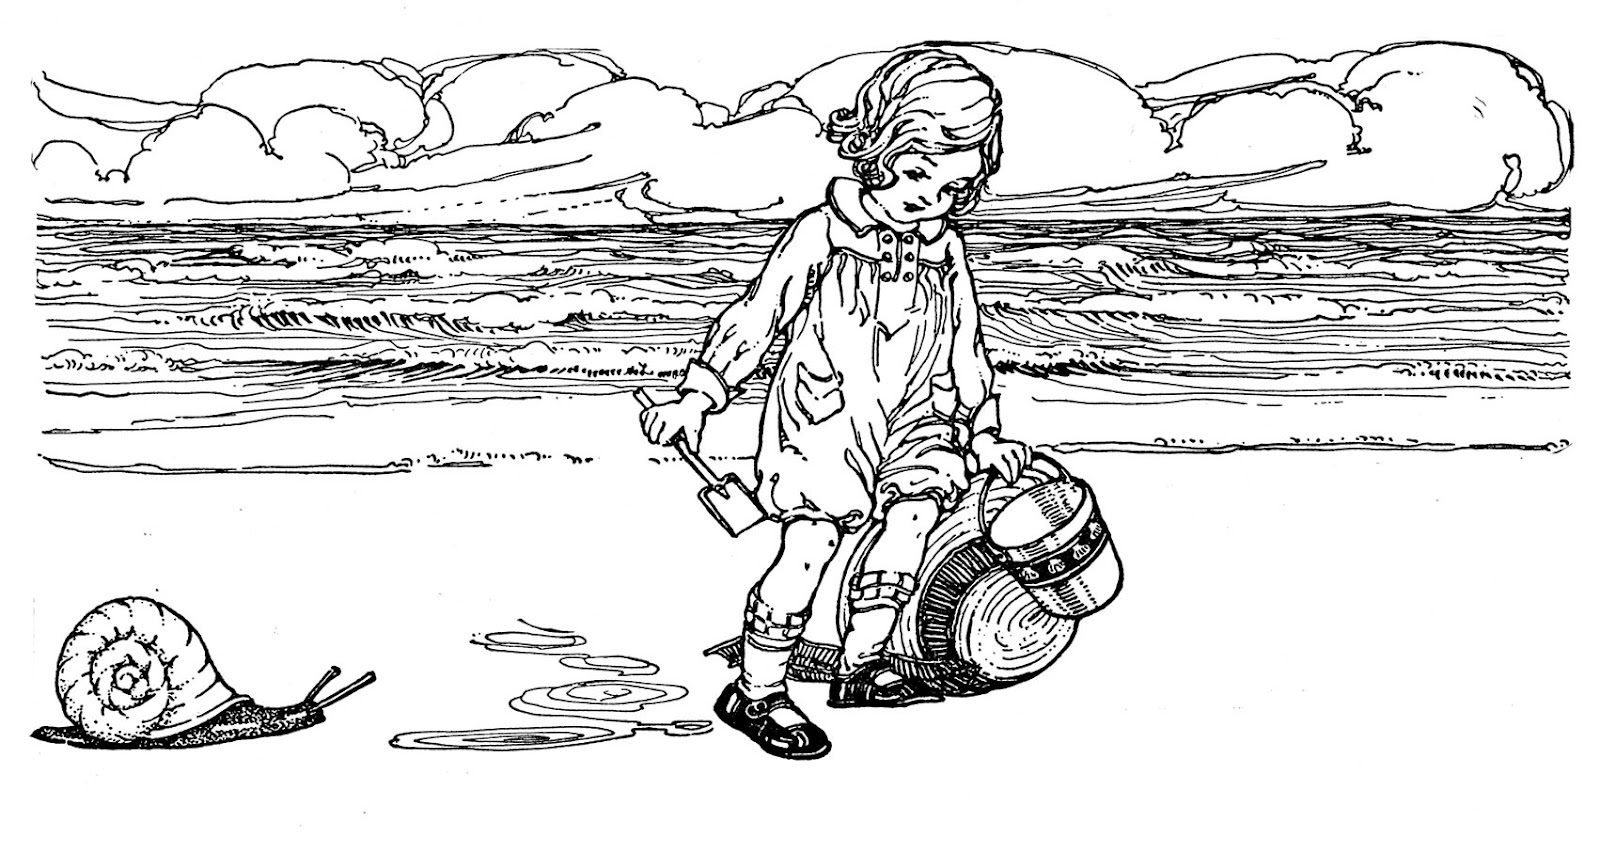 Vintage Sketch - Adorable Child at the Beach - The ...